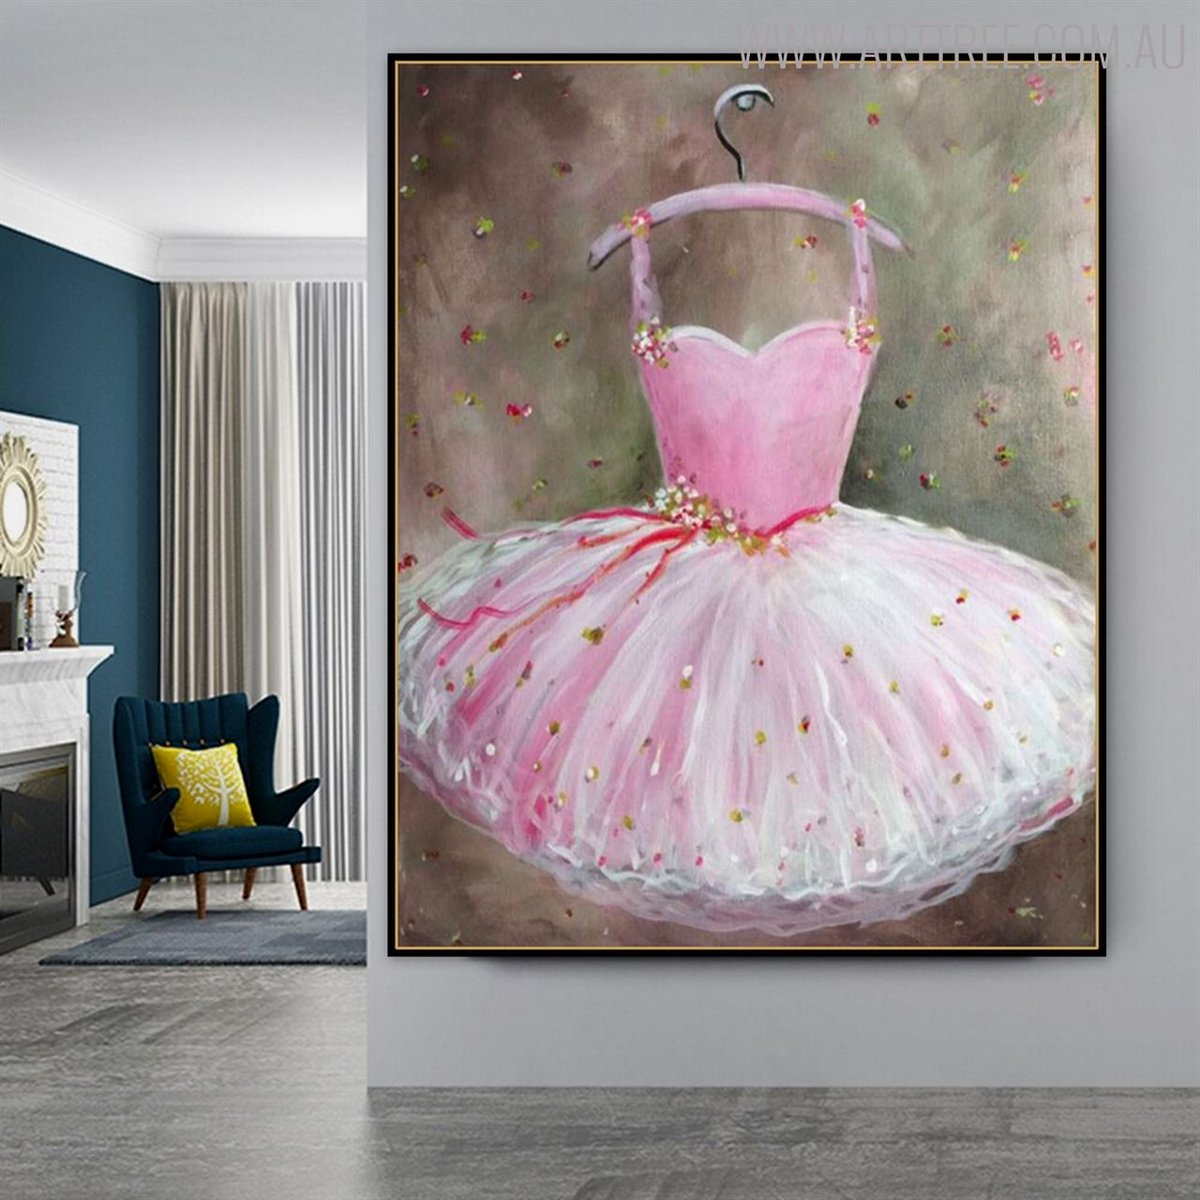 Every women favorite thing to wear is Gown. Hang this beautiful watercolor painting to make your home look stylish and stunning.   #acrylicpainting #oilpainting #artwork #homedecor